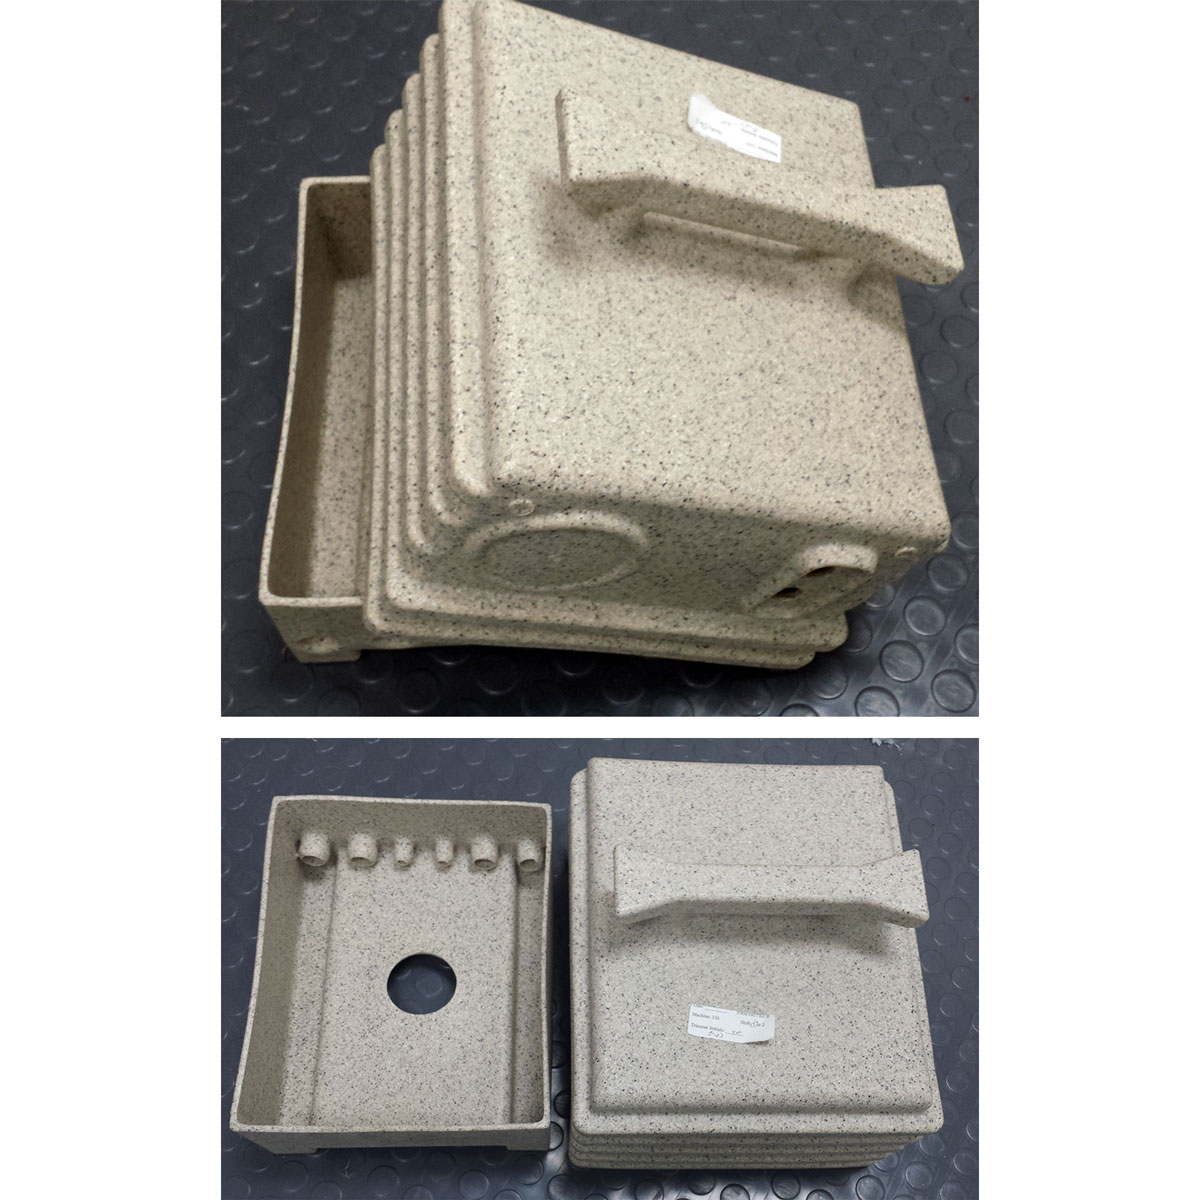 Clean Storm Roto-Mold Plastic Job Box for High Pressure Heaters, Misting systems, Pump box, and Similar 8970568